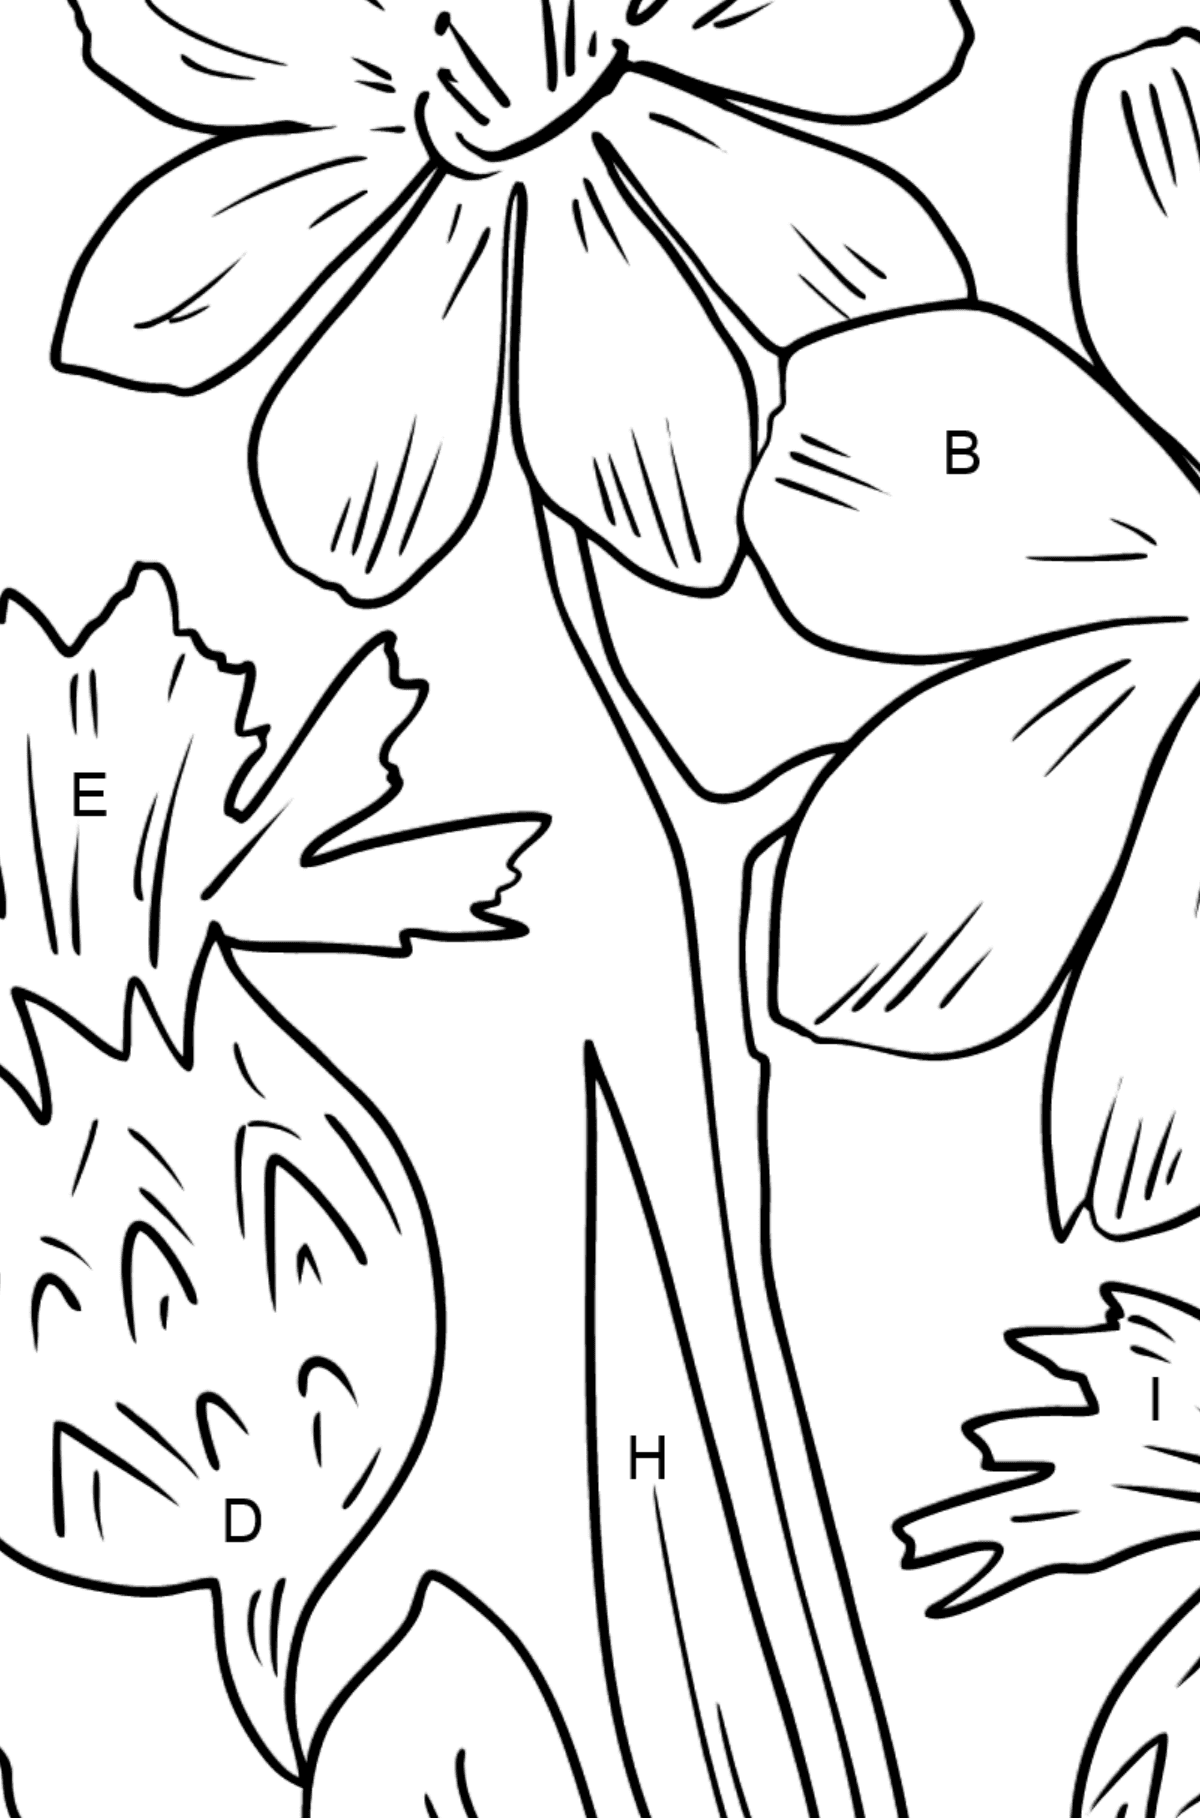 Flower Coloring Page - flowers in the meadow - Coloring by Letters for Kids